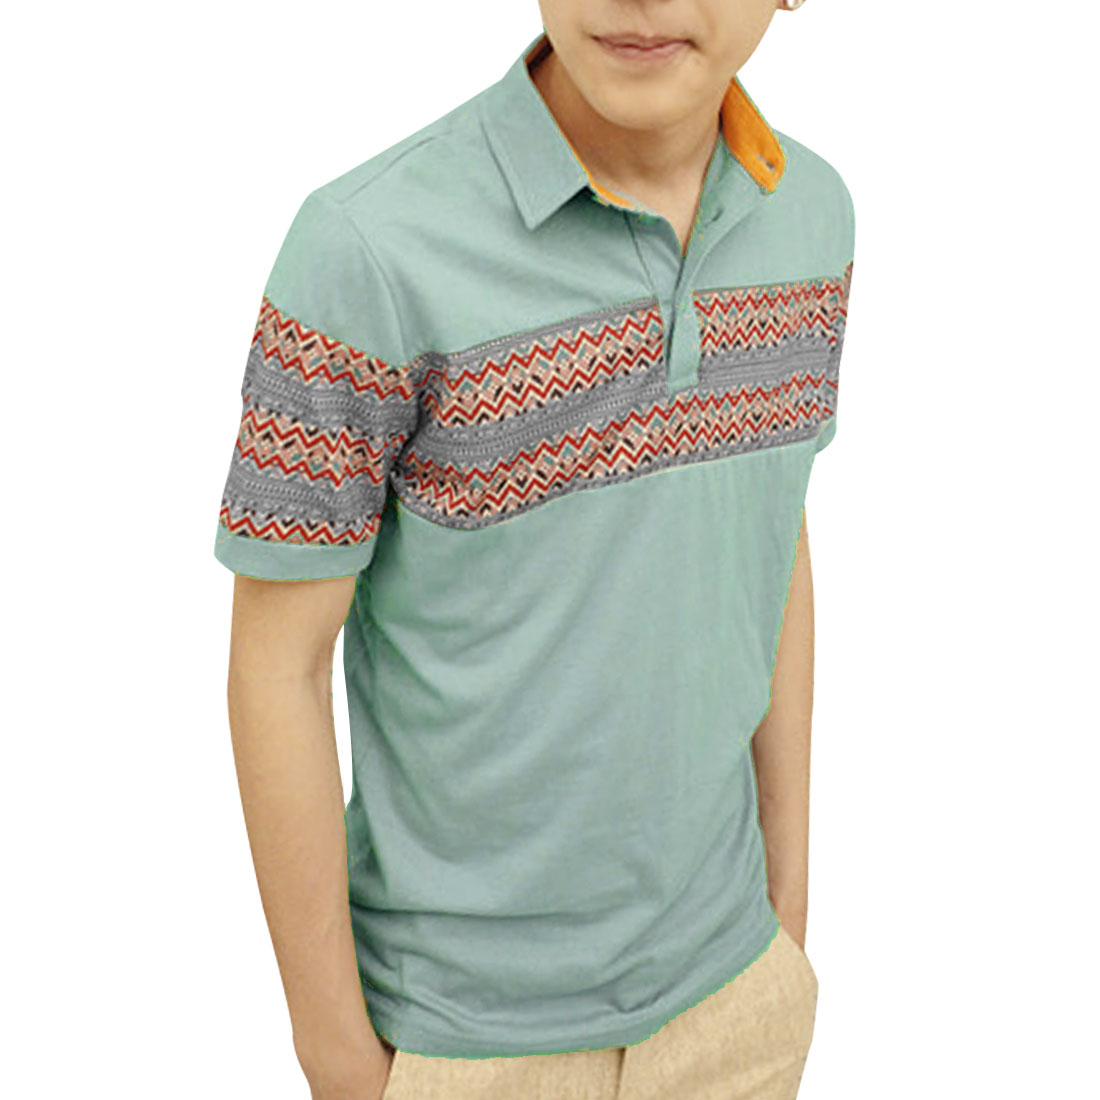 Button Down Zigzag Print Stylish Casual Polo Shirt Top Pale Blue S for Men